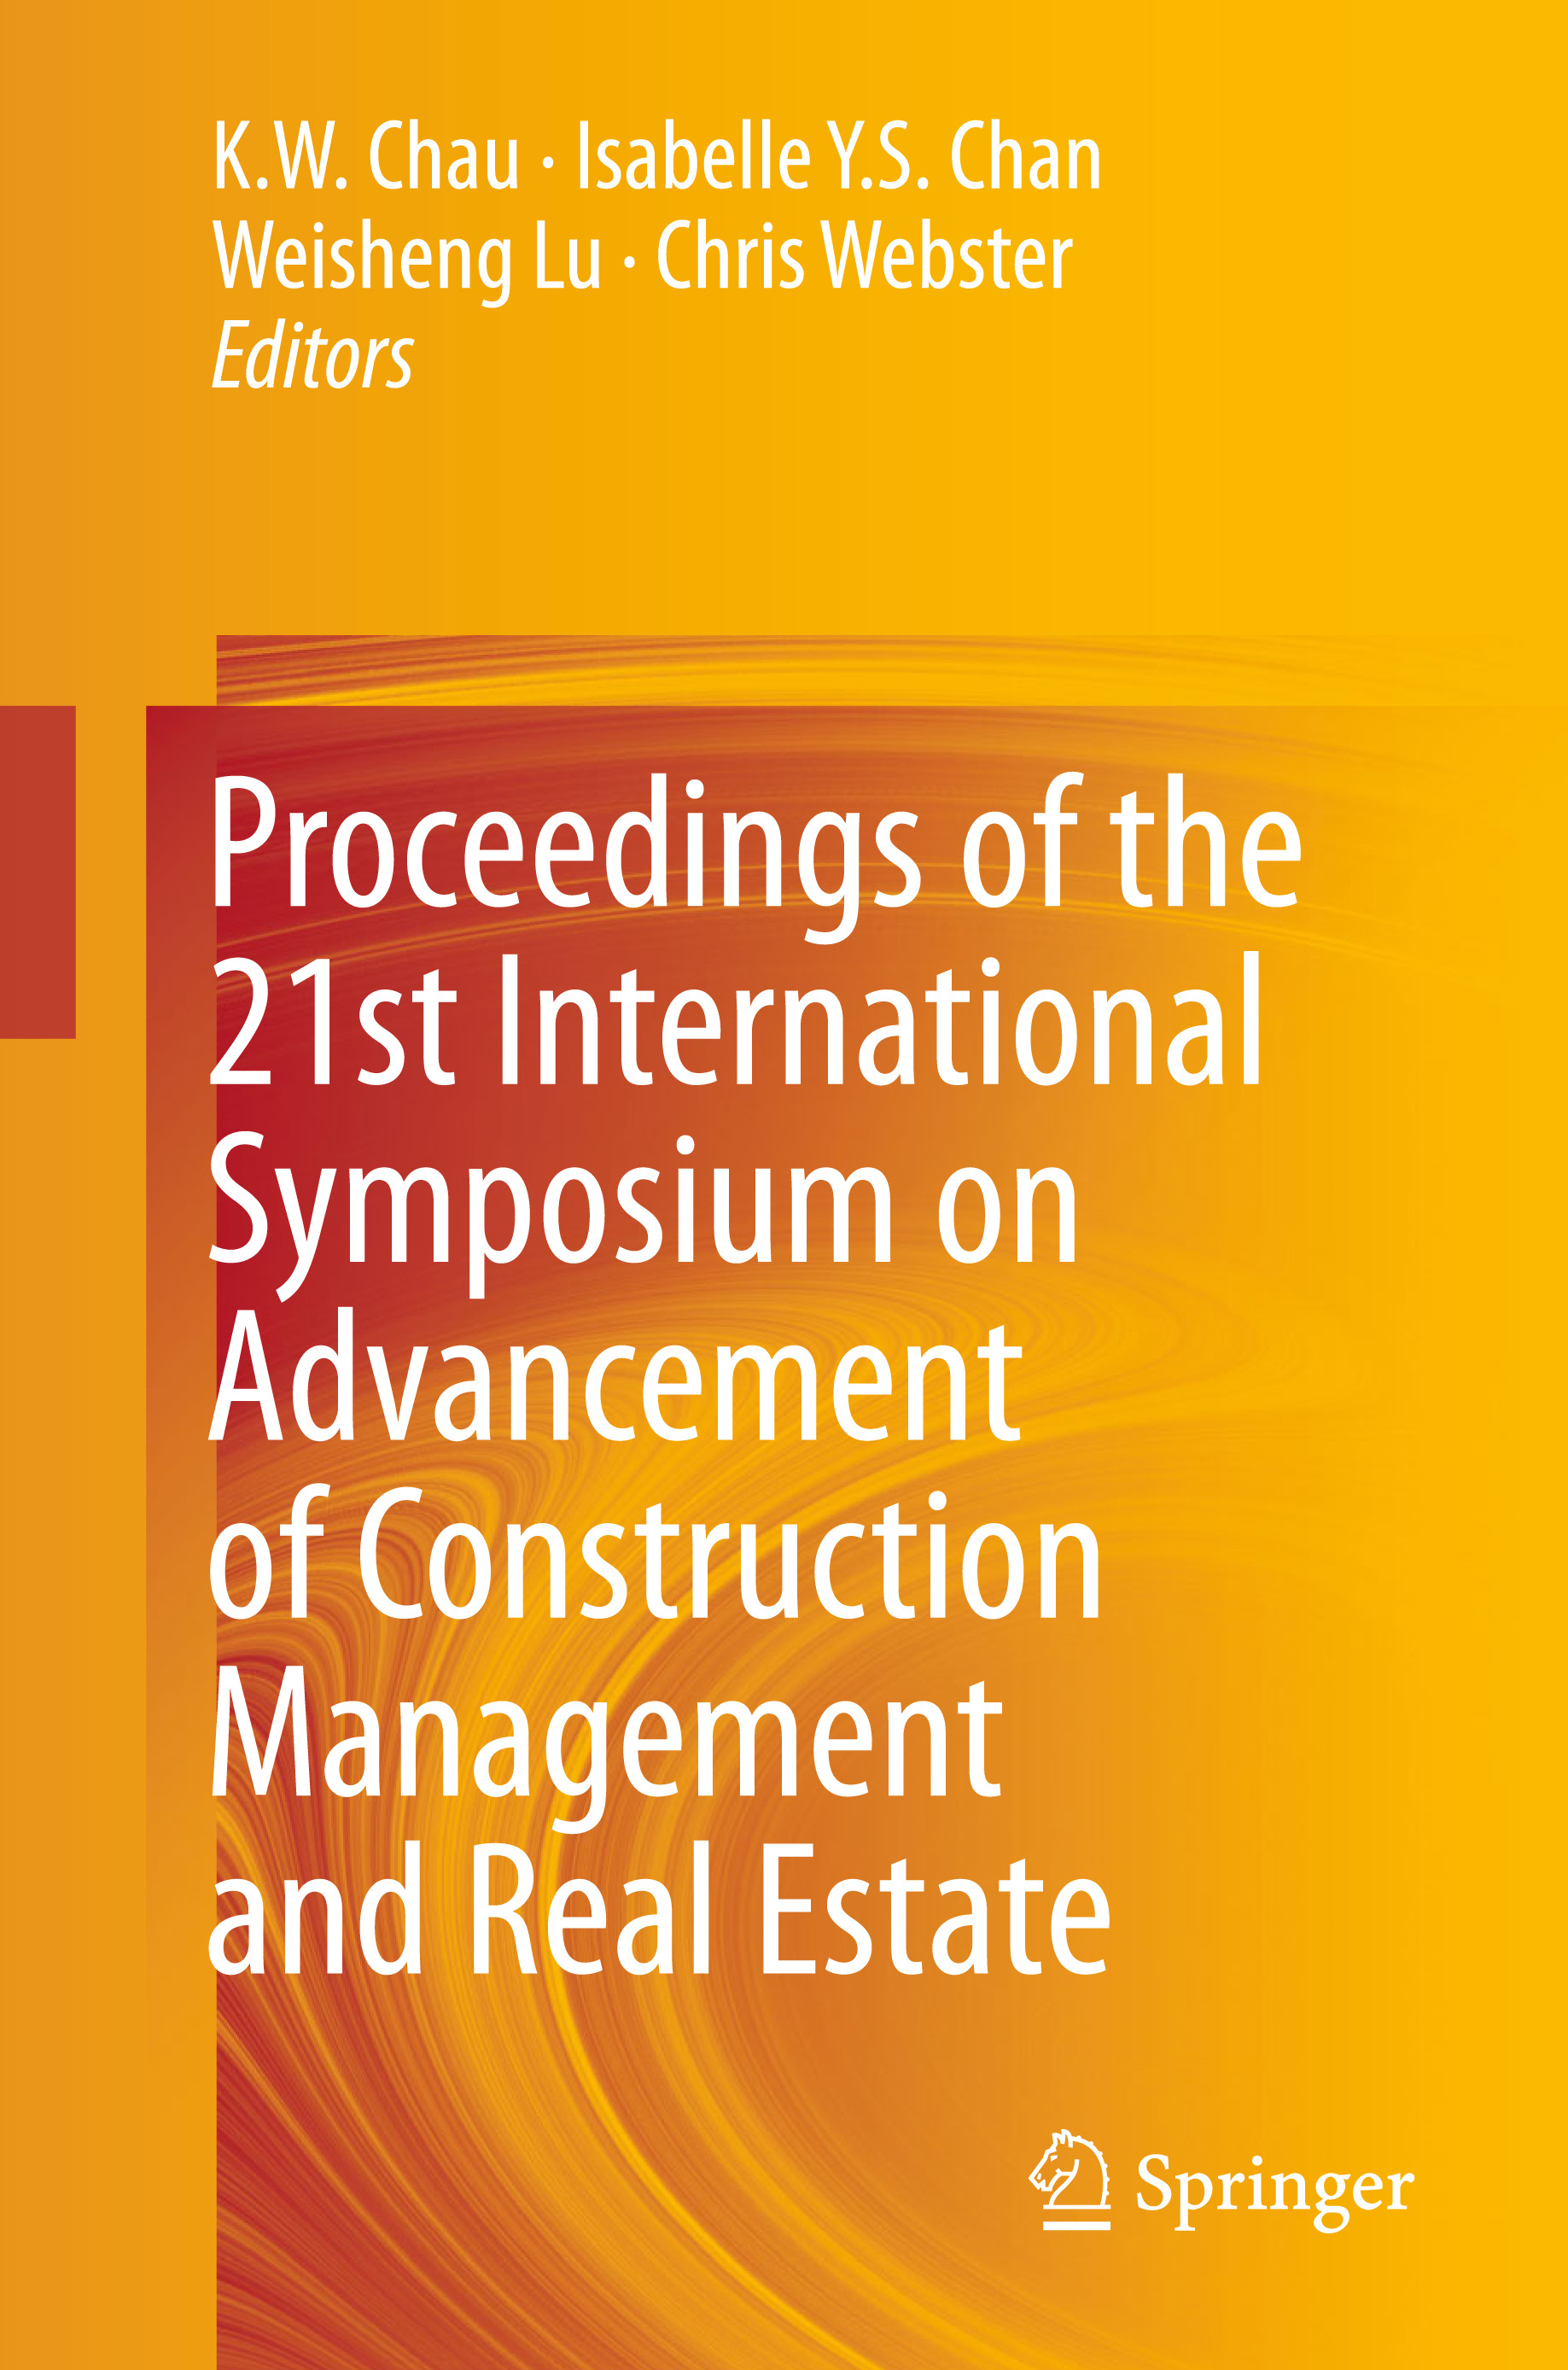 Chan, Isabelle Y.S. - Proceedings of the 21st International Symposium on Advancement of Construction Management and Real Estate, e-bok